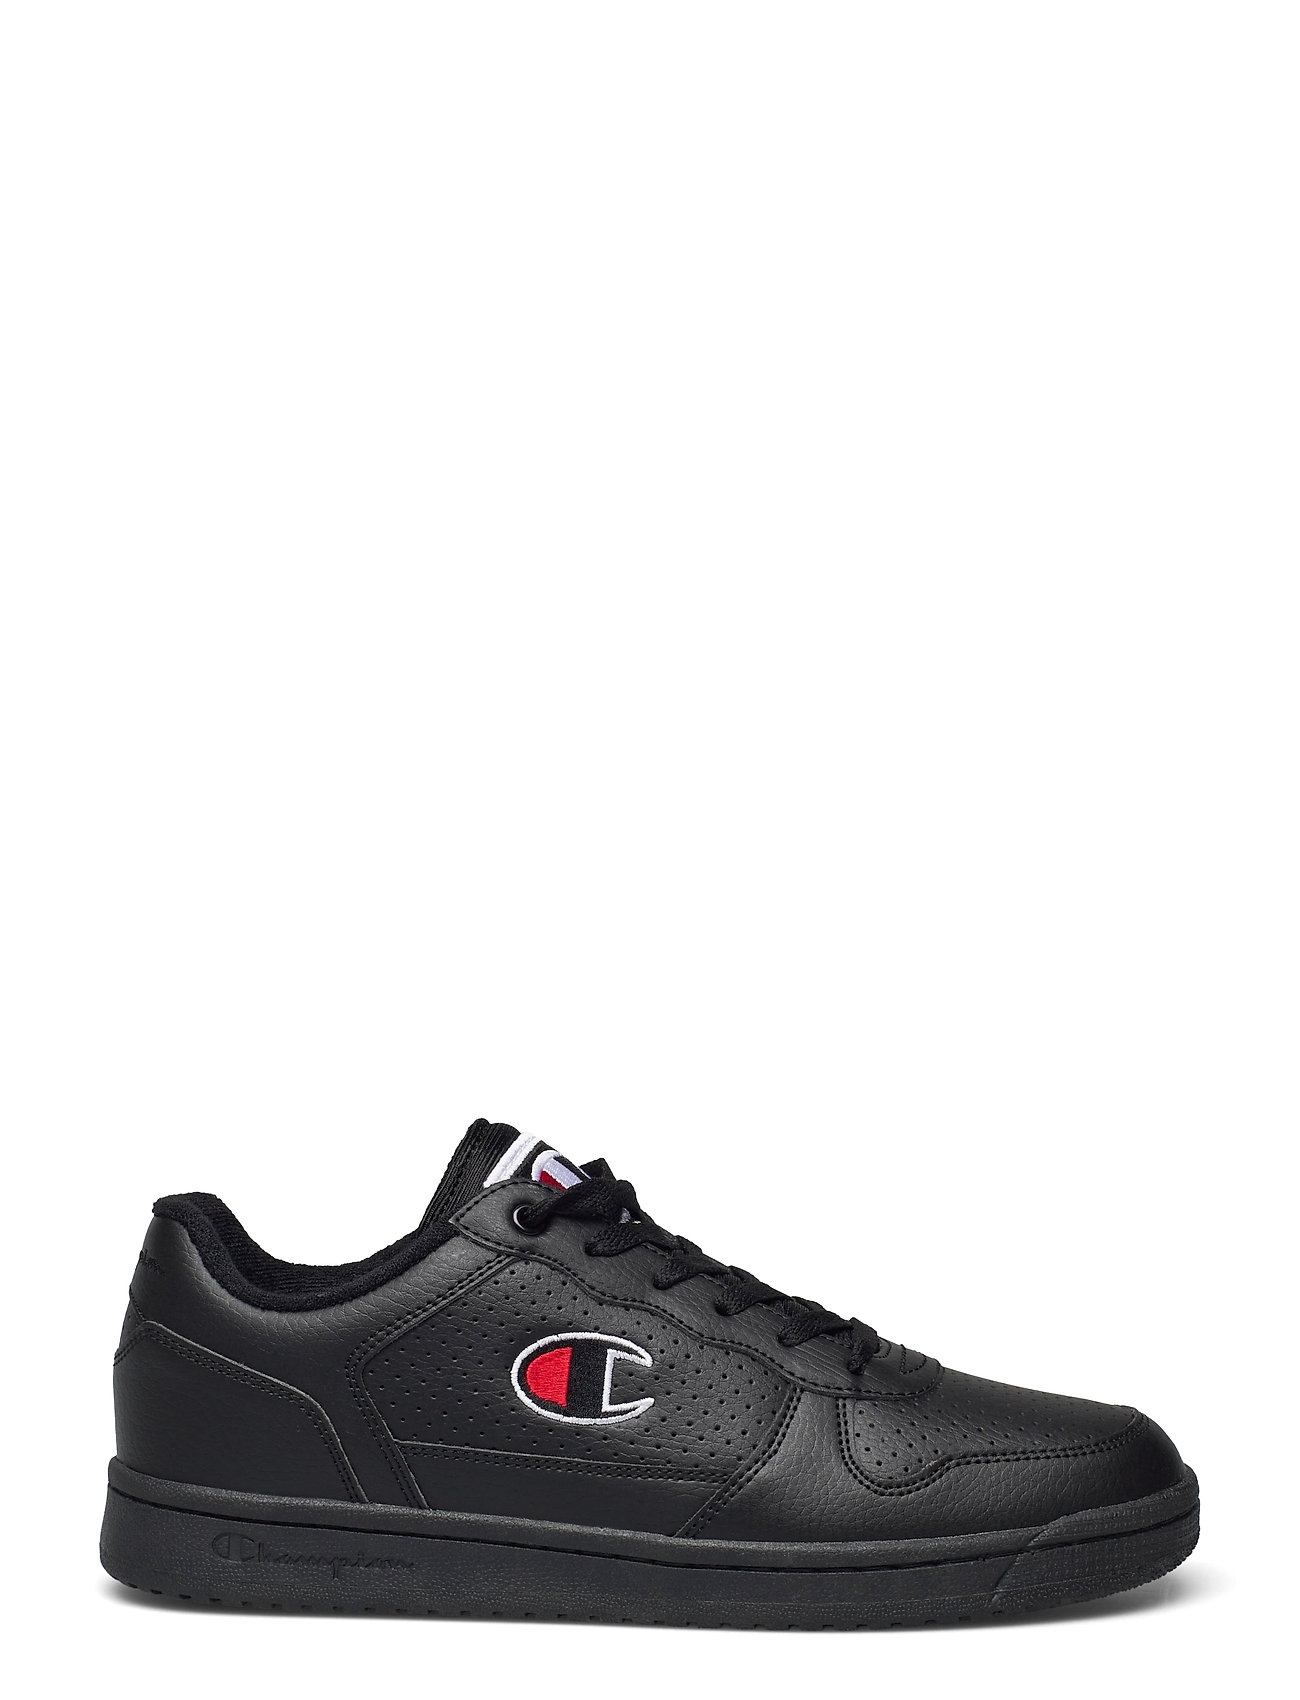 Image of Low Cut Shoe Chicago Low Low-top Sneakers Sort Champion (3532708119)